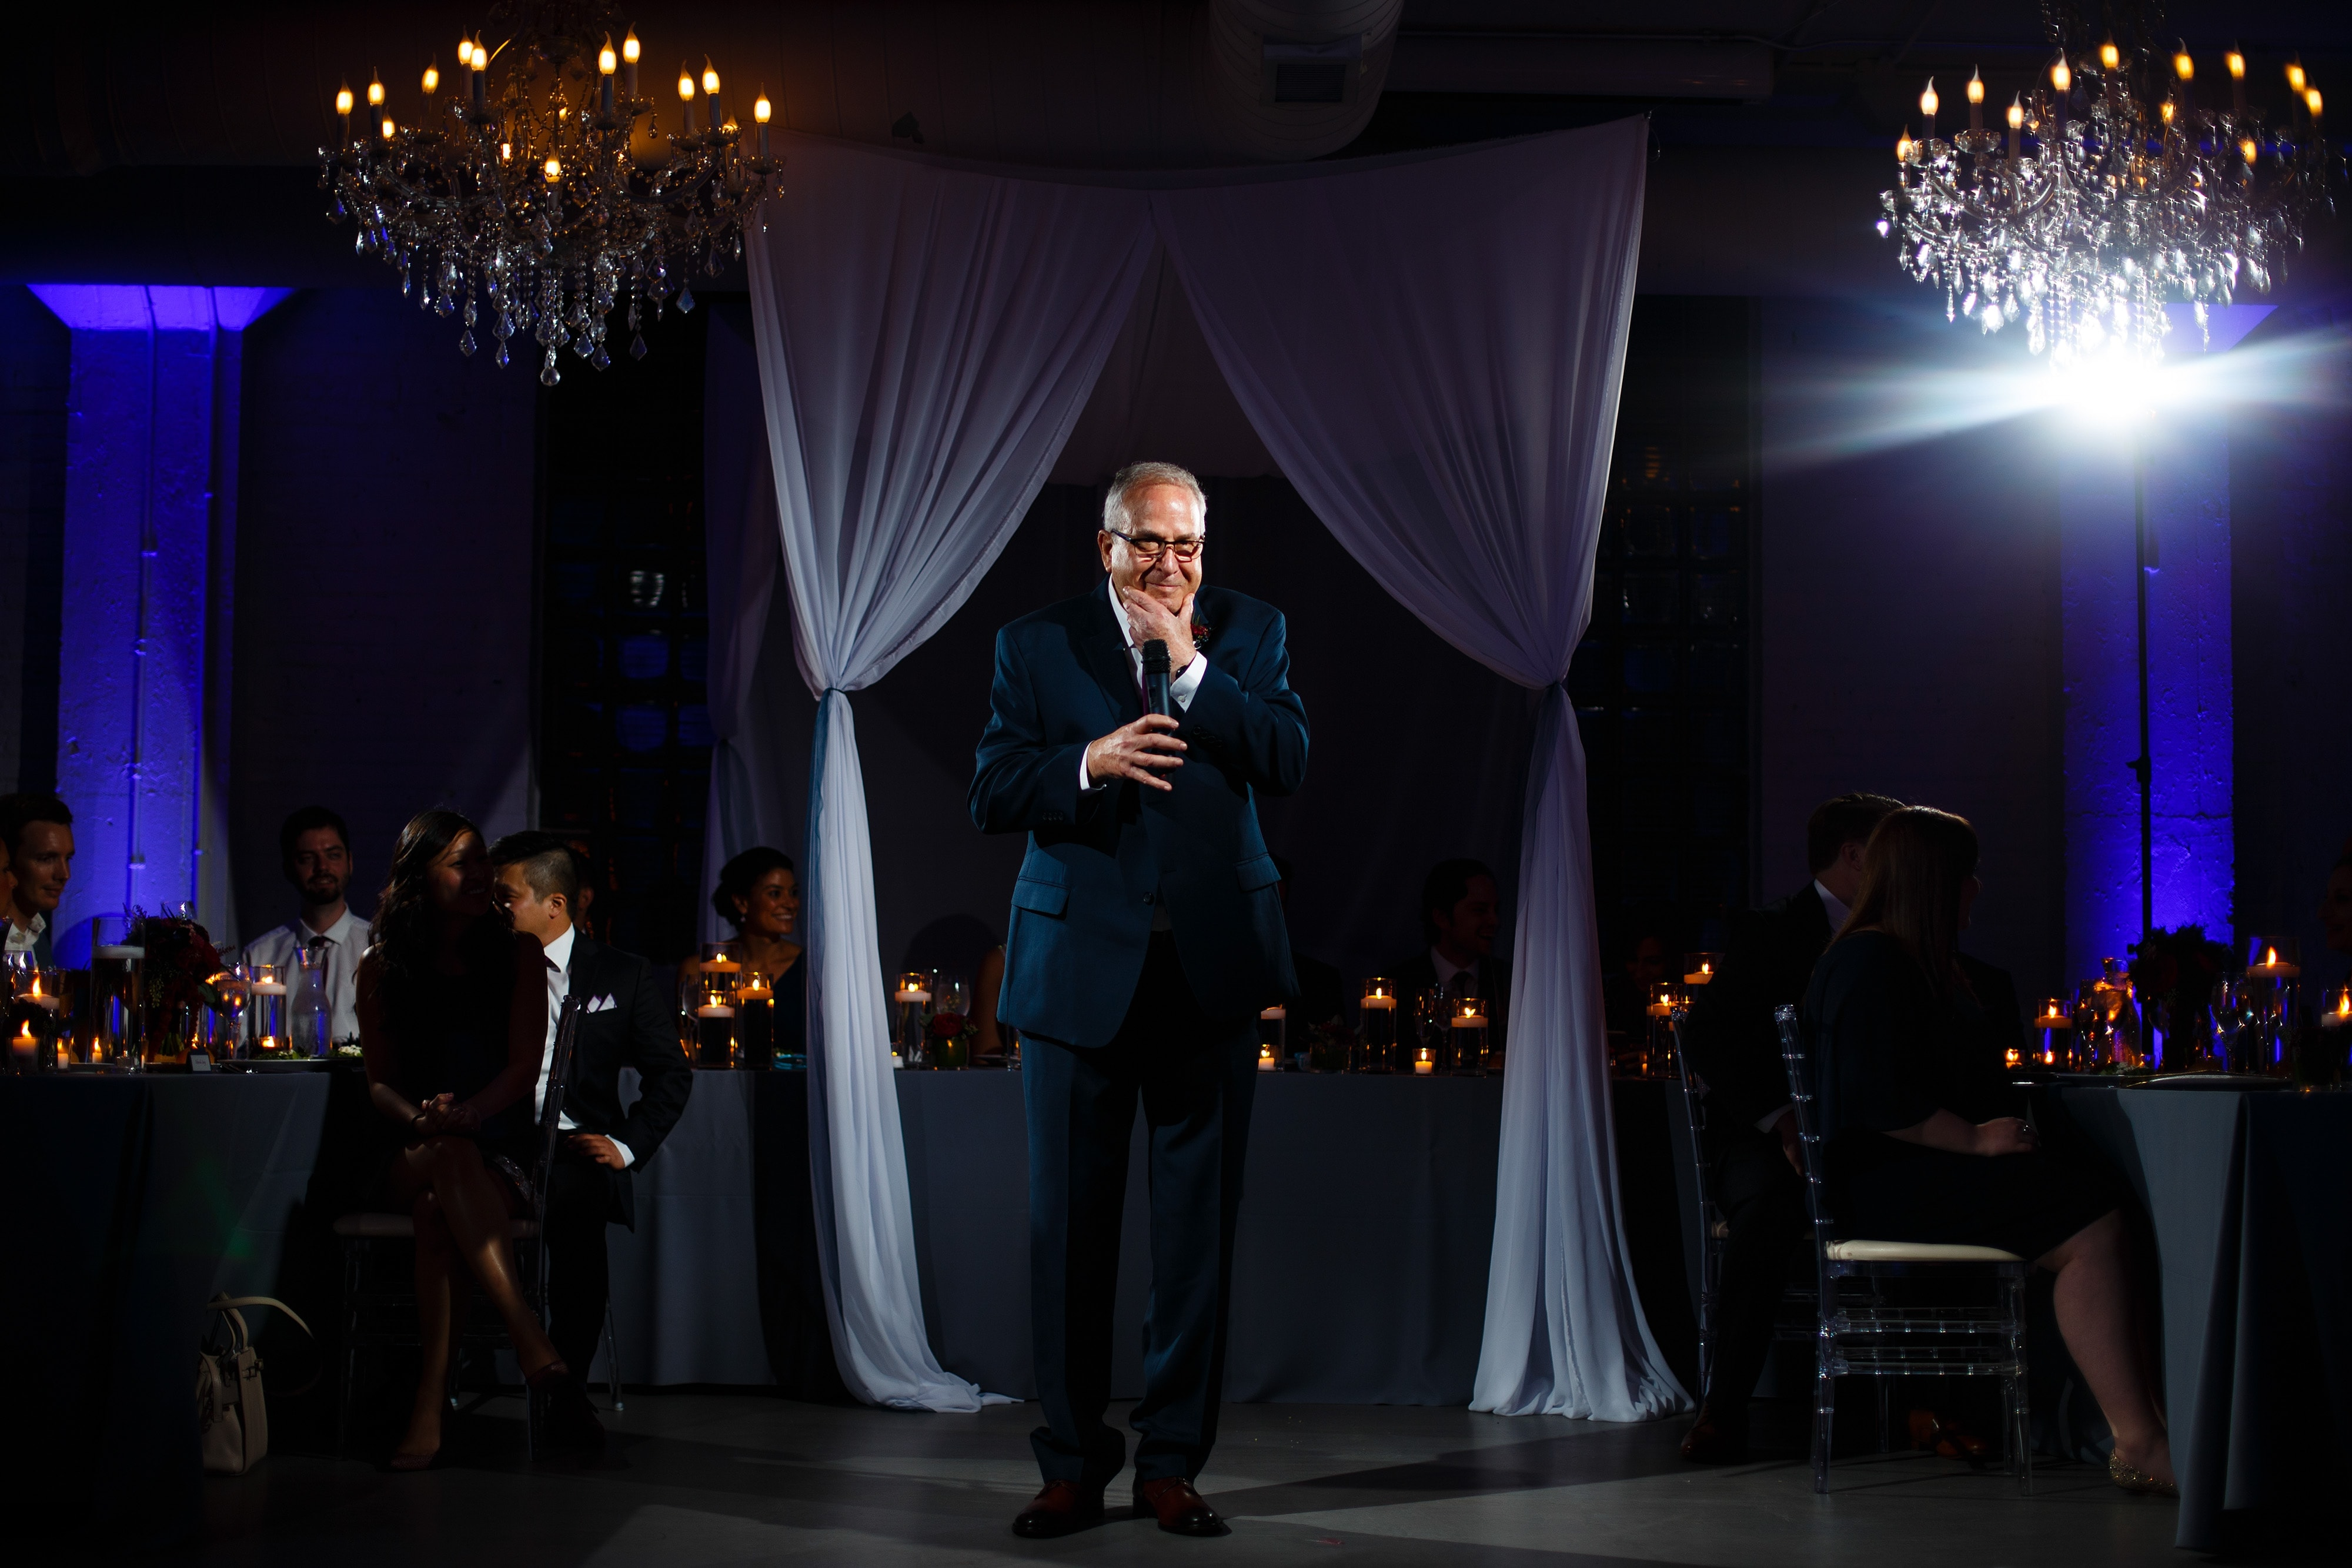 The father of the groom gives a toast